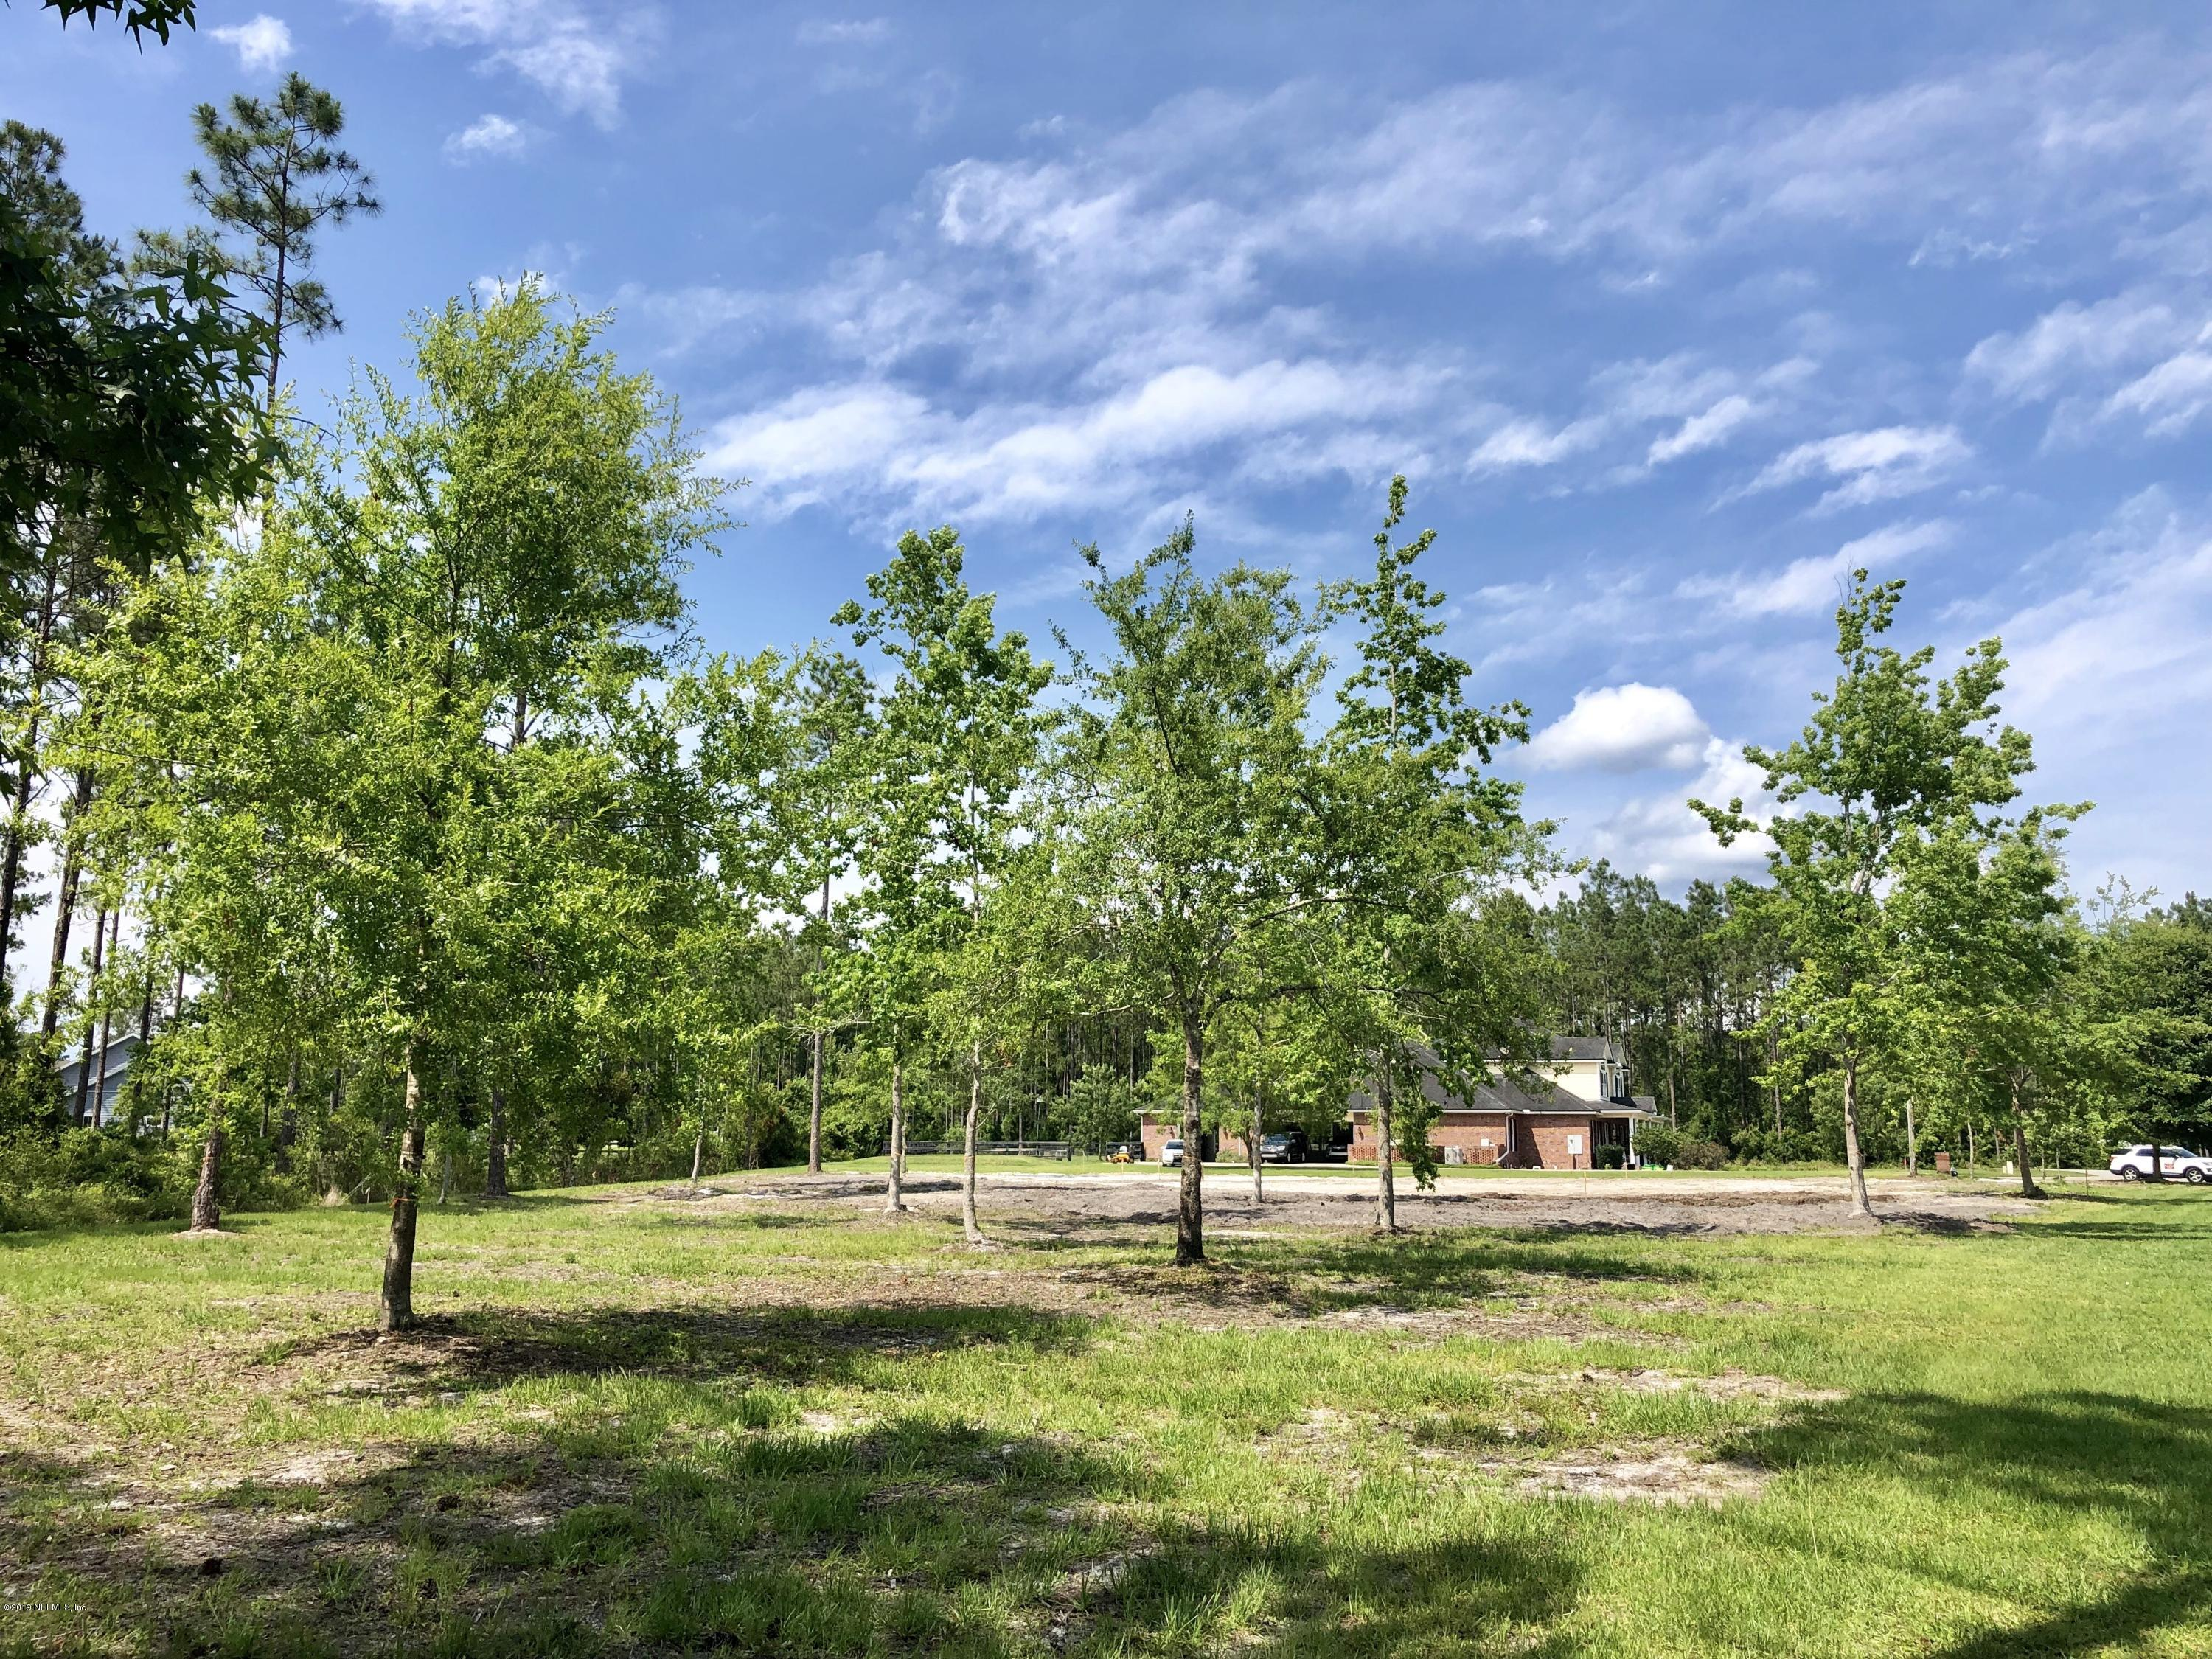 413 FRIAR TUCK, ST AUGUSTINE, FLORIDA 32092, ,Vacant land,For sale,FRIAR TUCK,998408